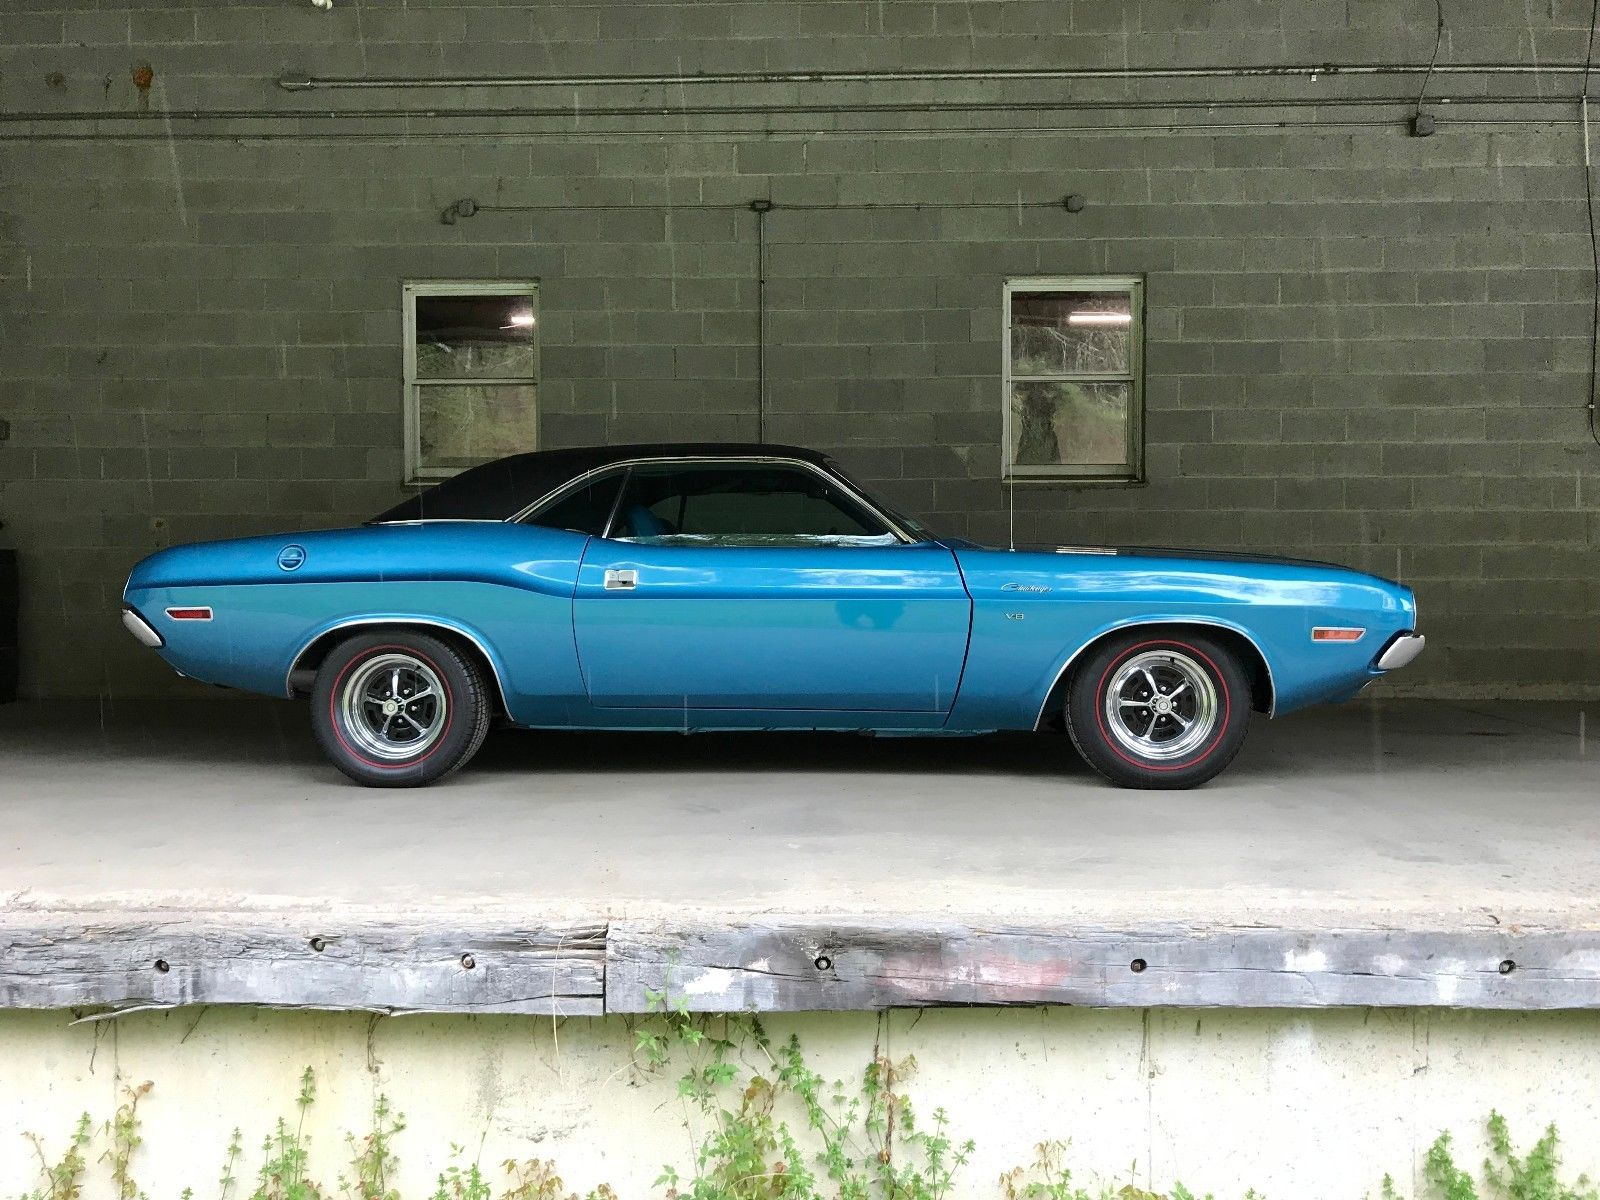 This 1970 Dodge Challenger is a beautiful temptress thumbnail